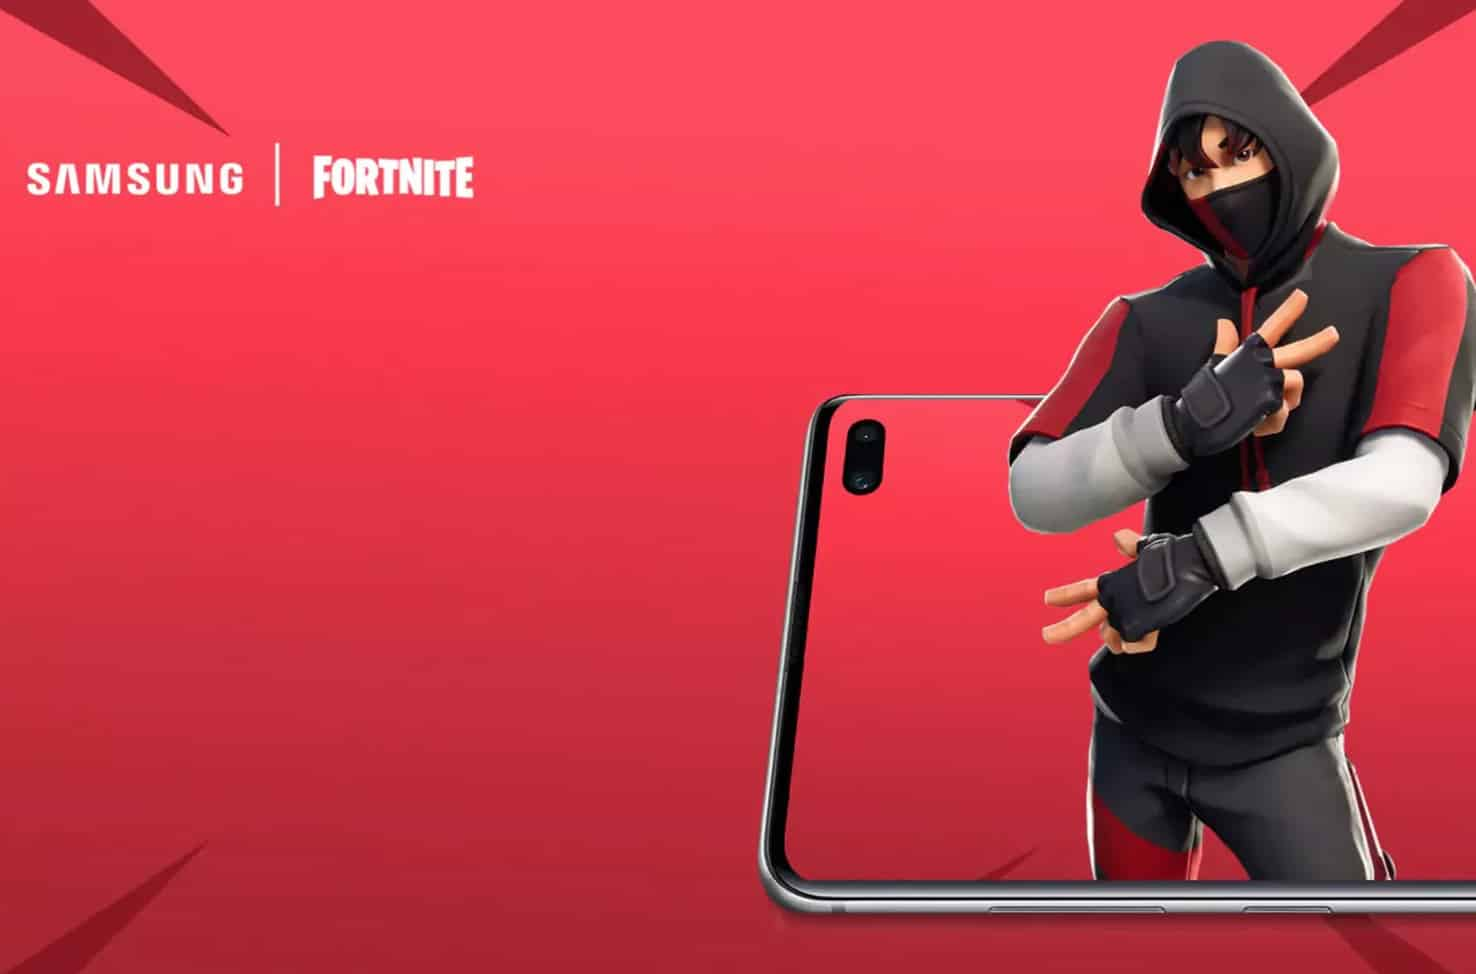 Get An Exclusive Galaxy S10 Fortnite Skin If You Preorder